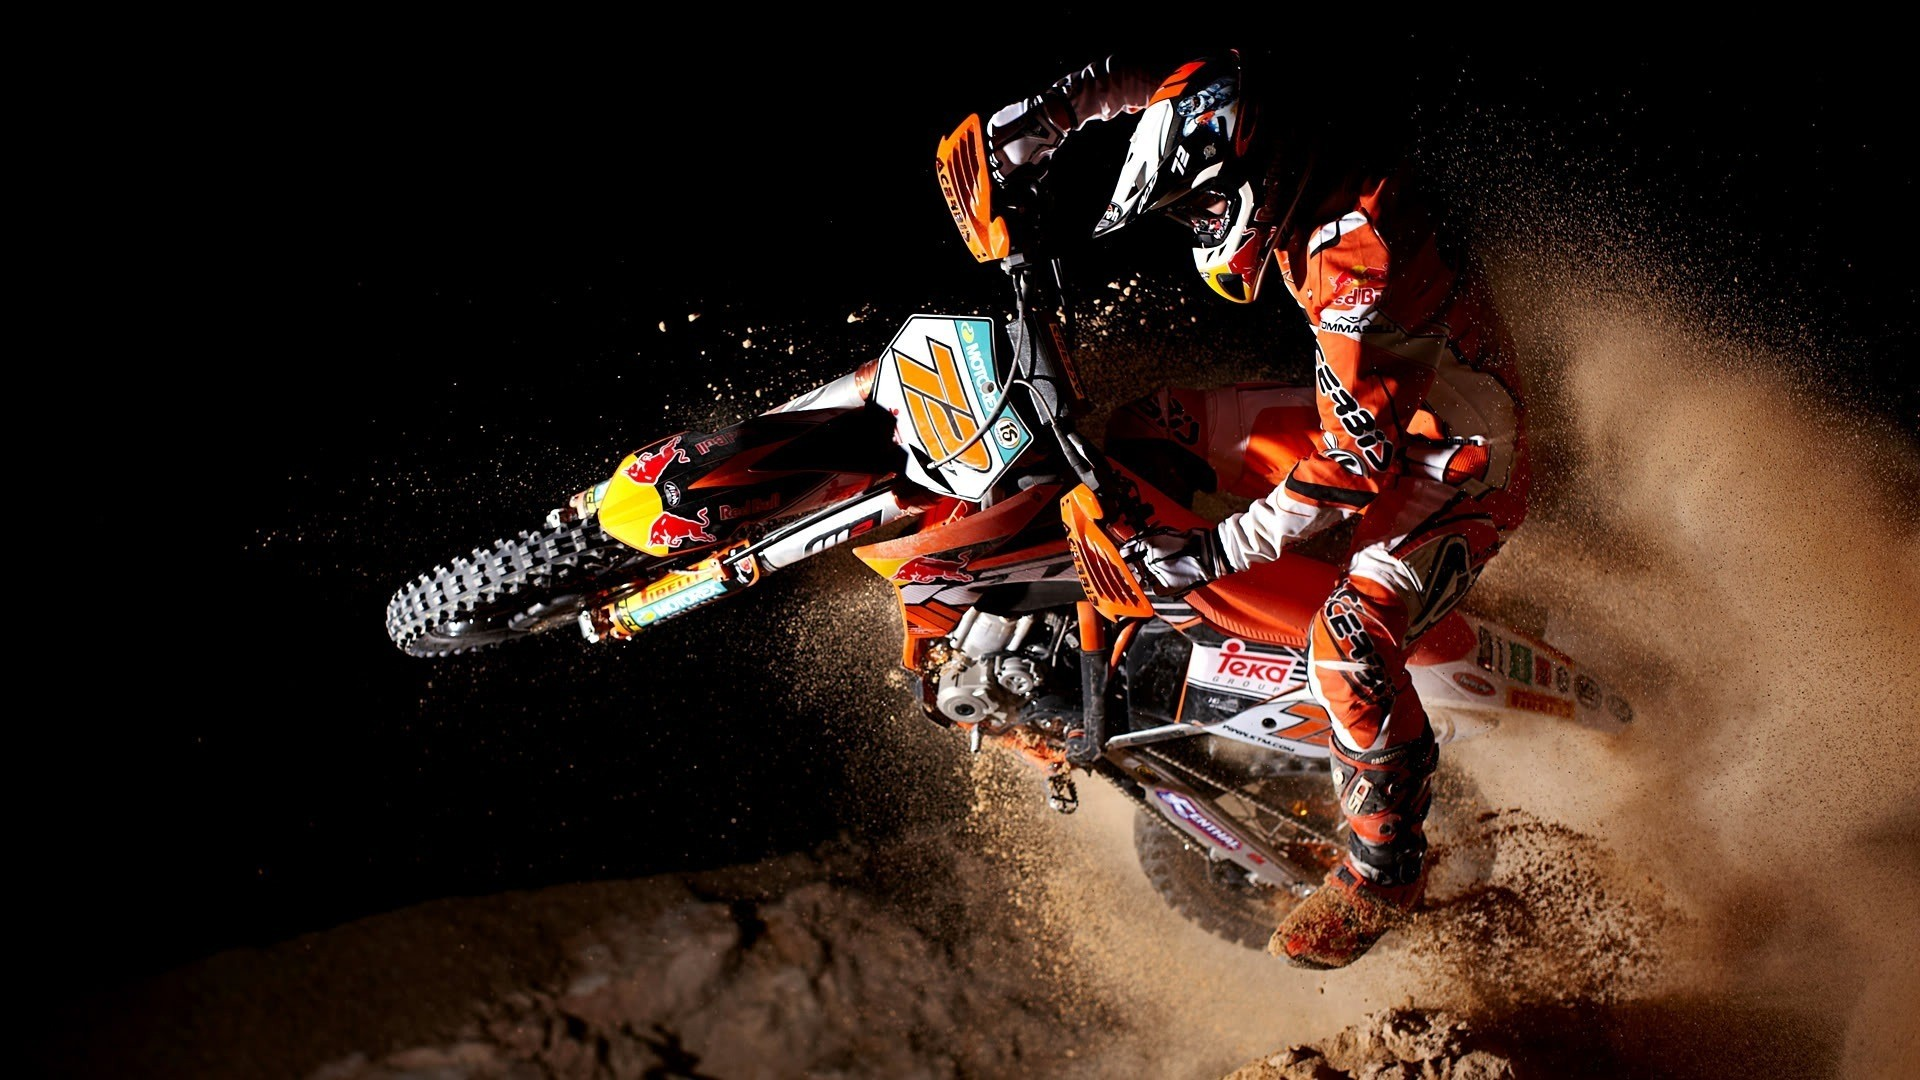 fonds d'écran wallpapers motocross motorbikes red bull Red Bull Wallpaper